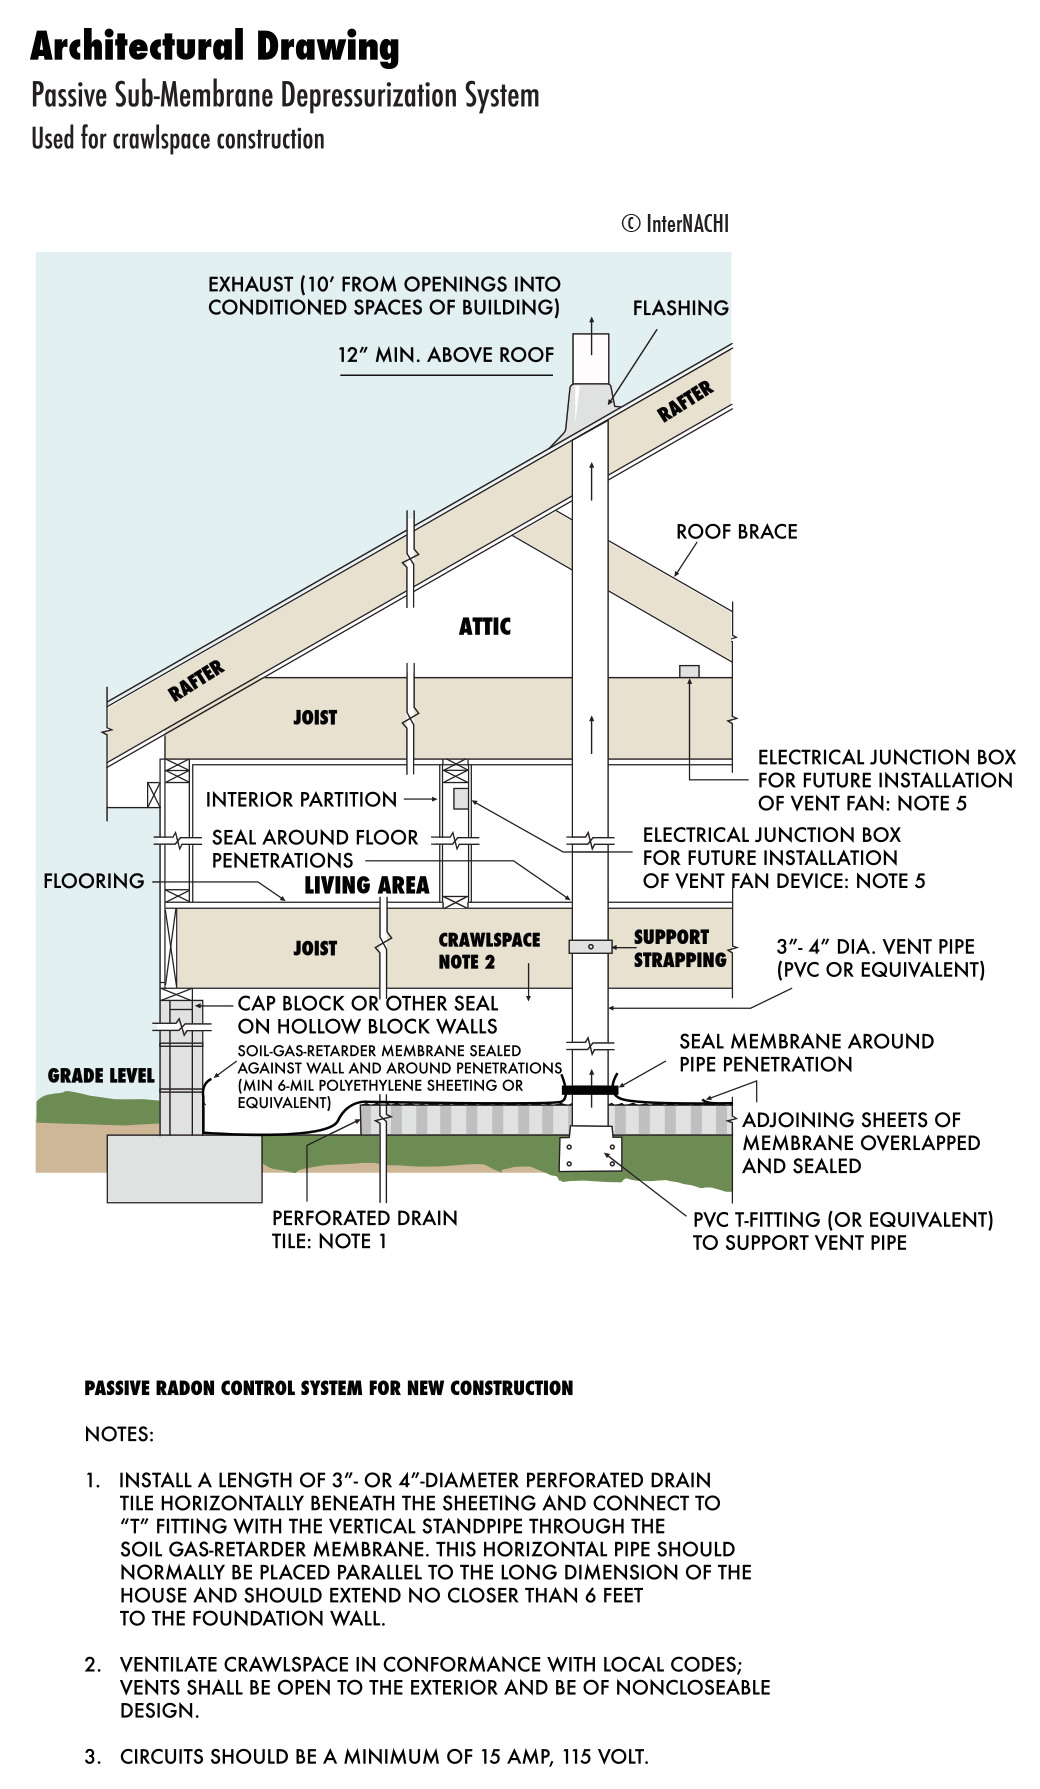 Architectural Drawing of Crawlspace Depressurization Radon System